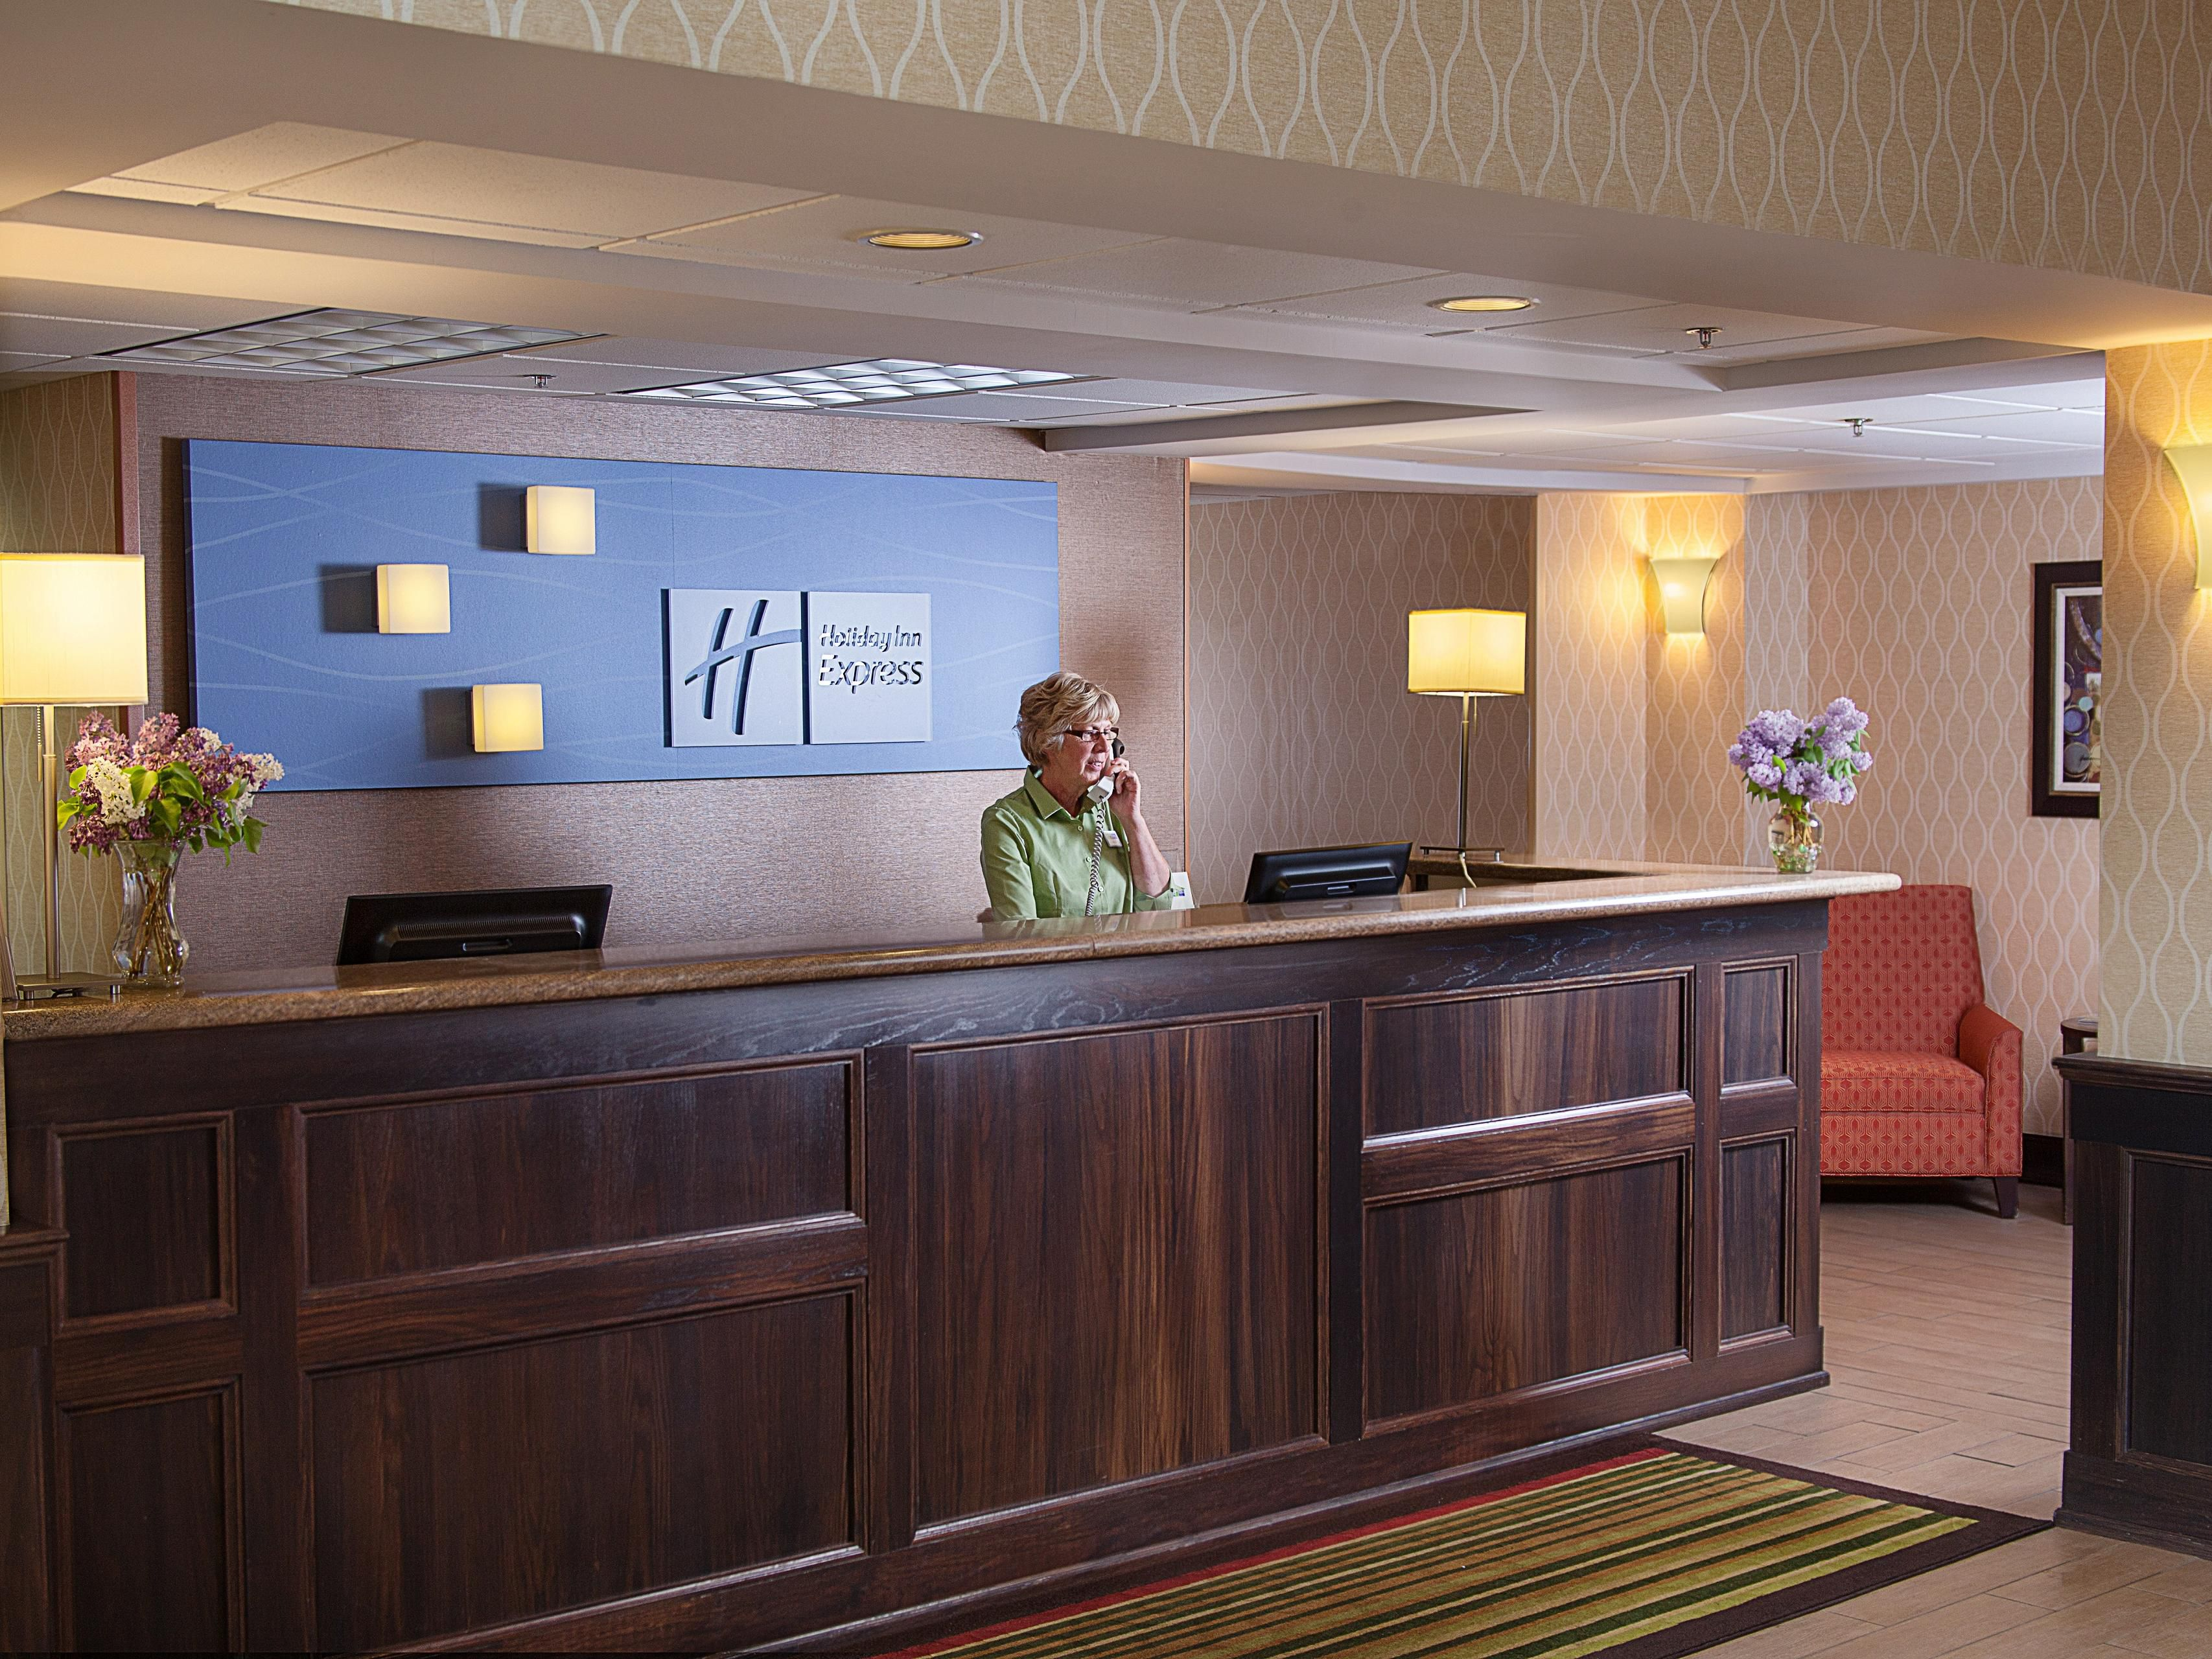 Holiday Inn Express Houghton Hotel Lobby